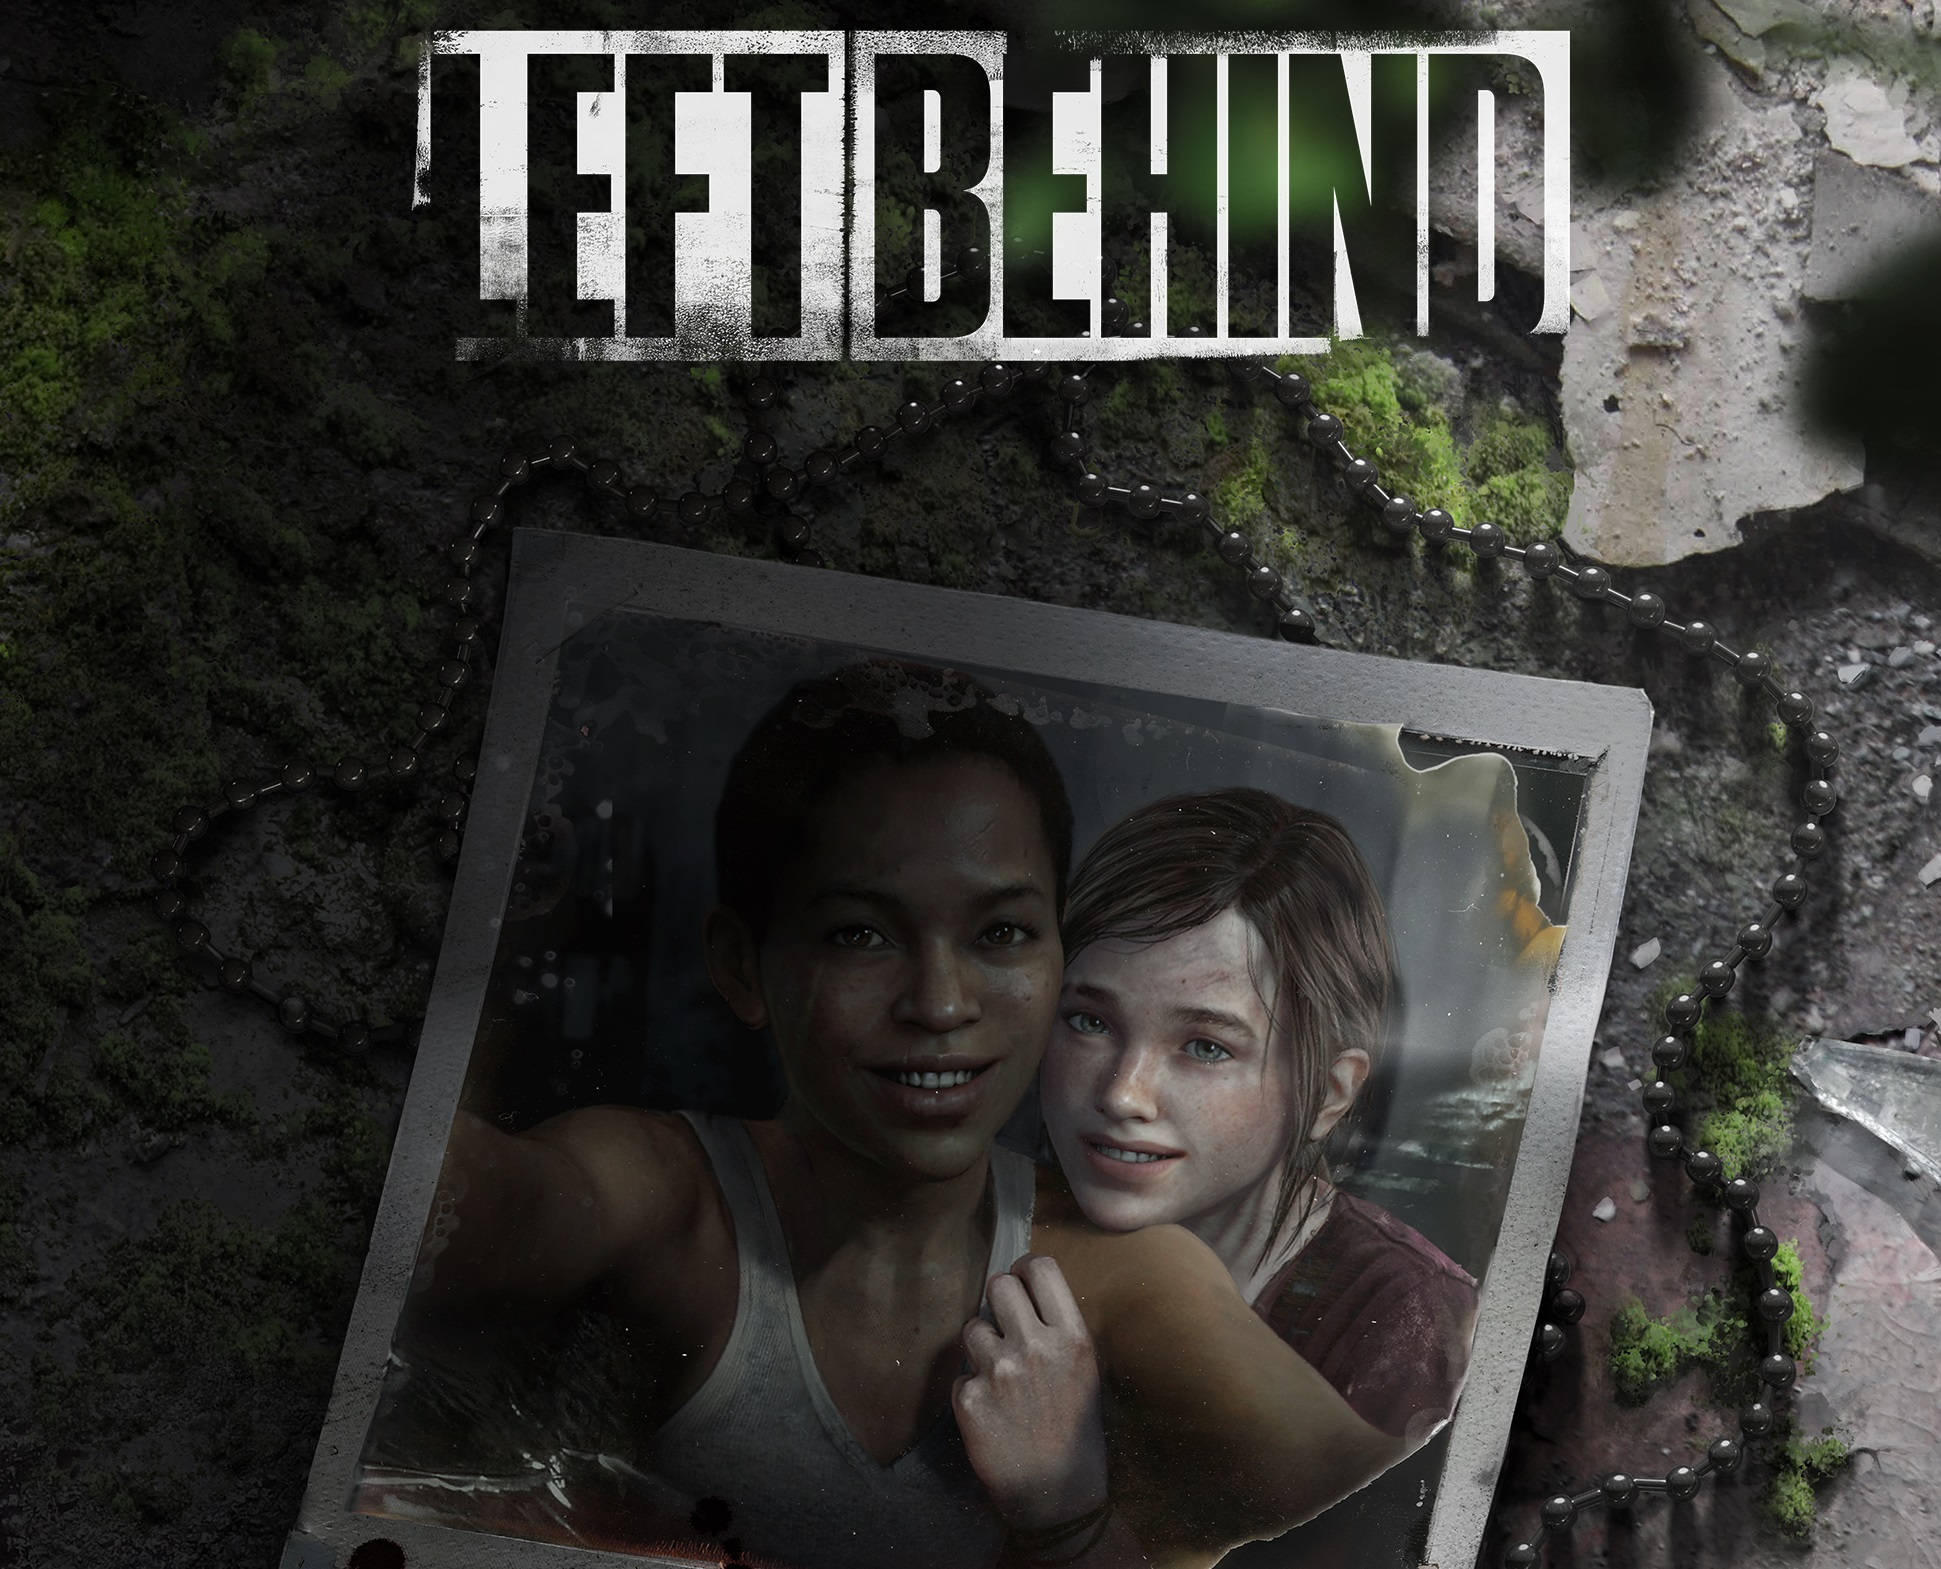 Left Behind - The Last of the